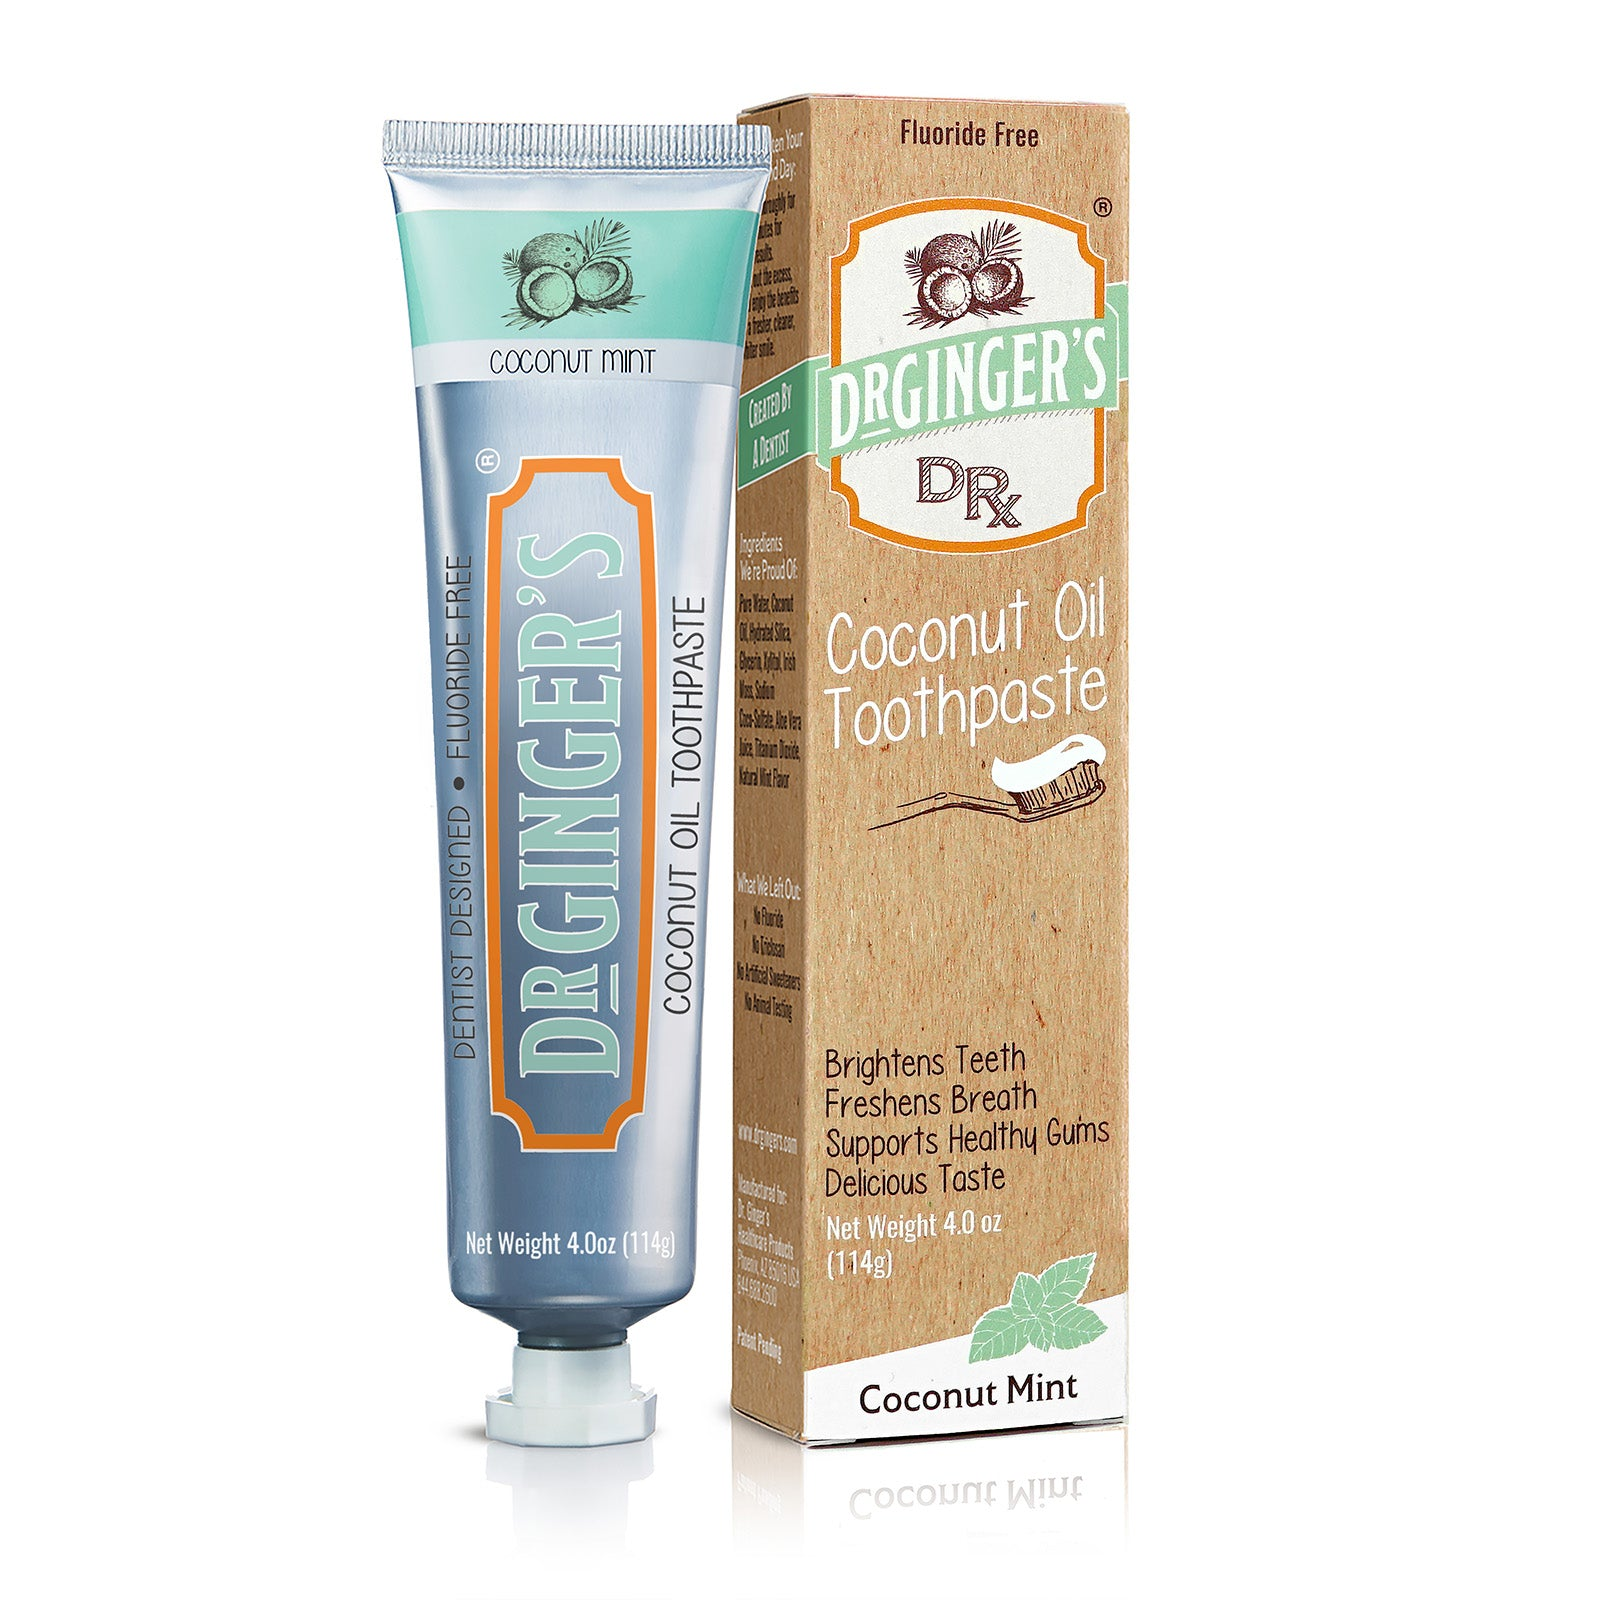 Dr. Ginger's Coconut Oil Toothpaste, Tube and Box